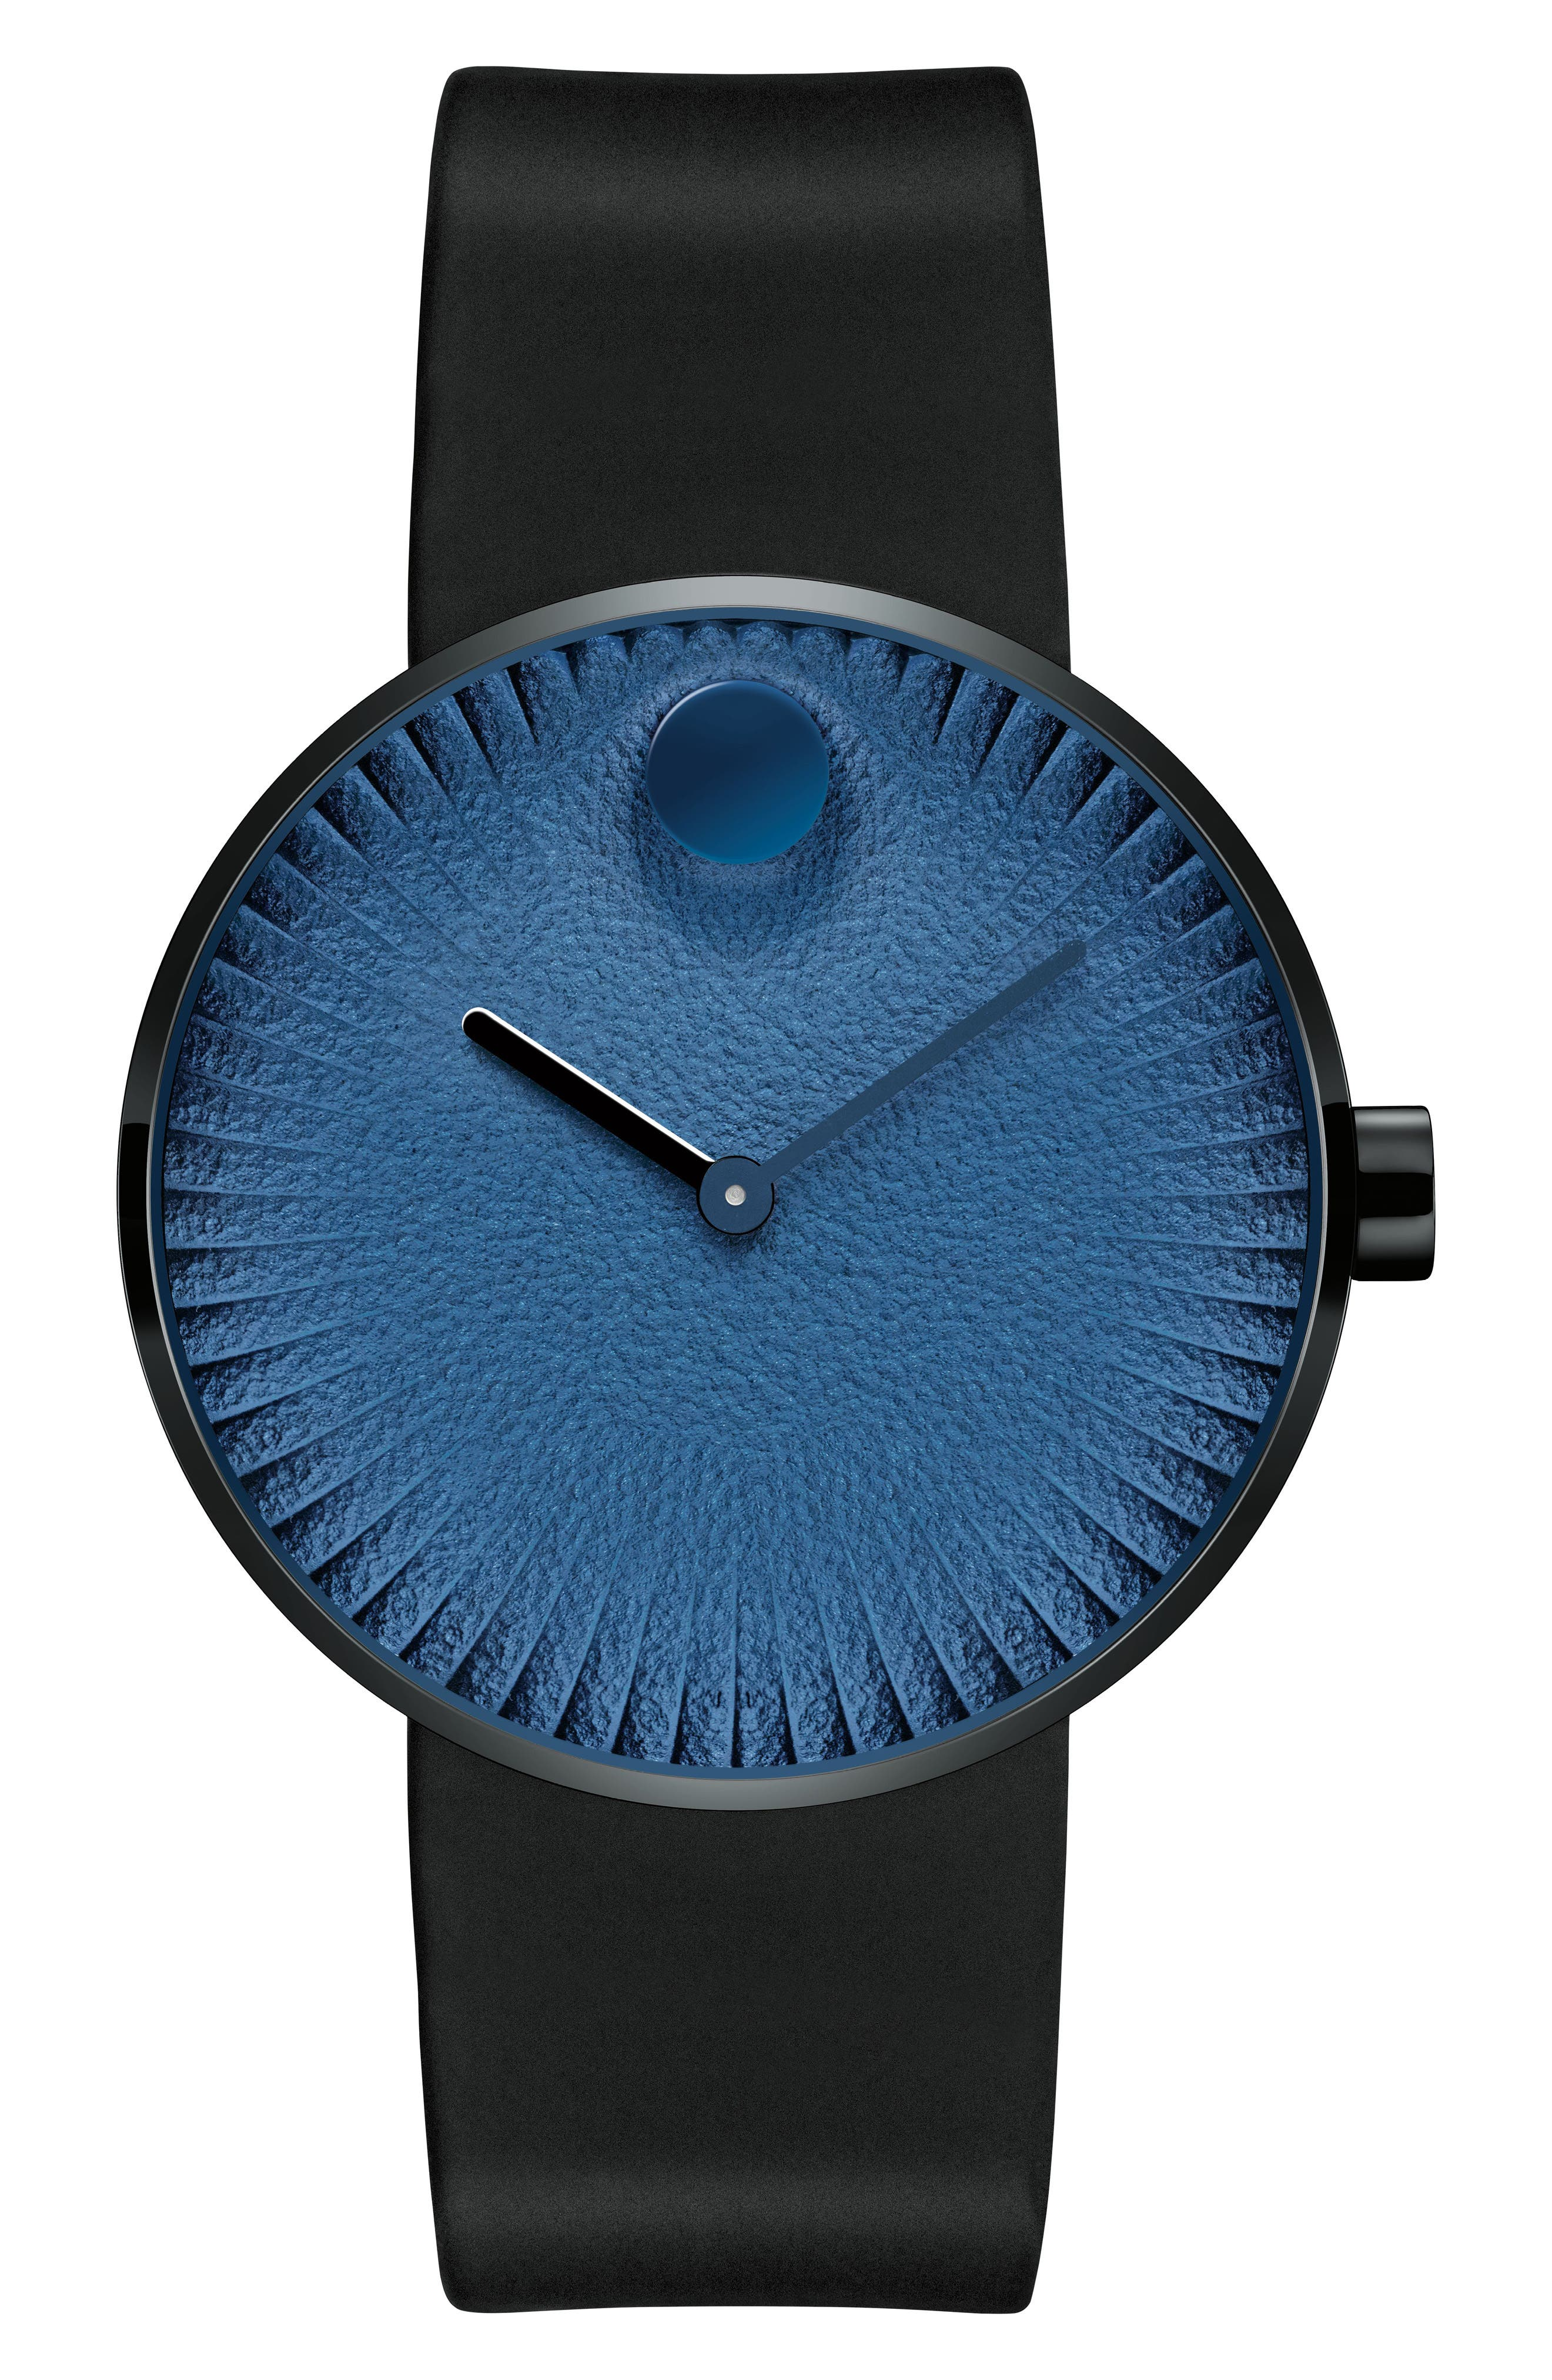 Main Image - Movado Edge Anchor Rubber Strap Watch, 40mm